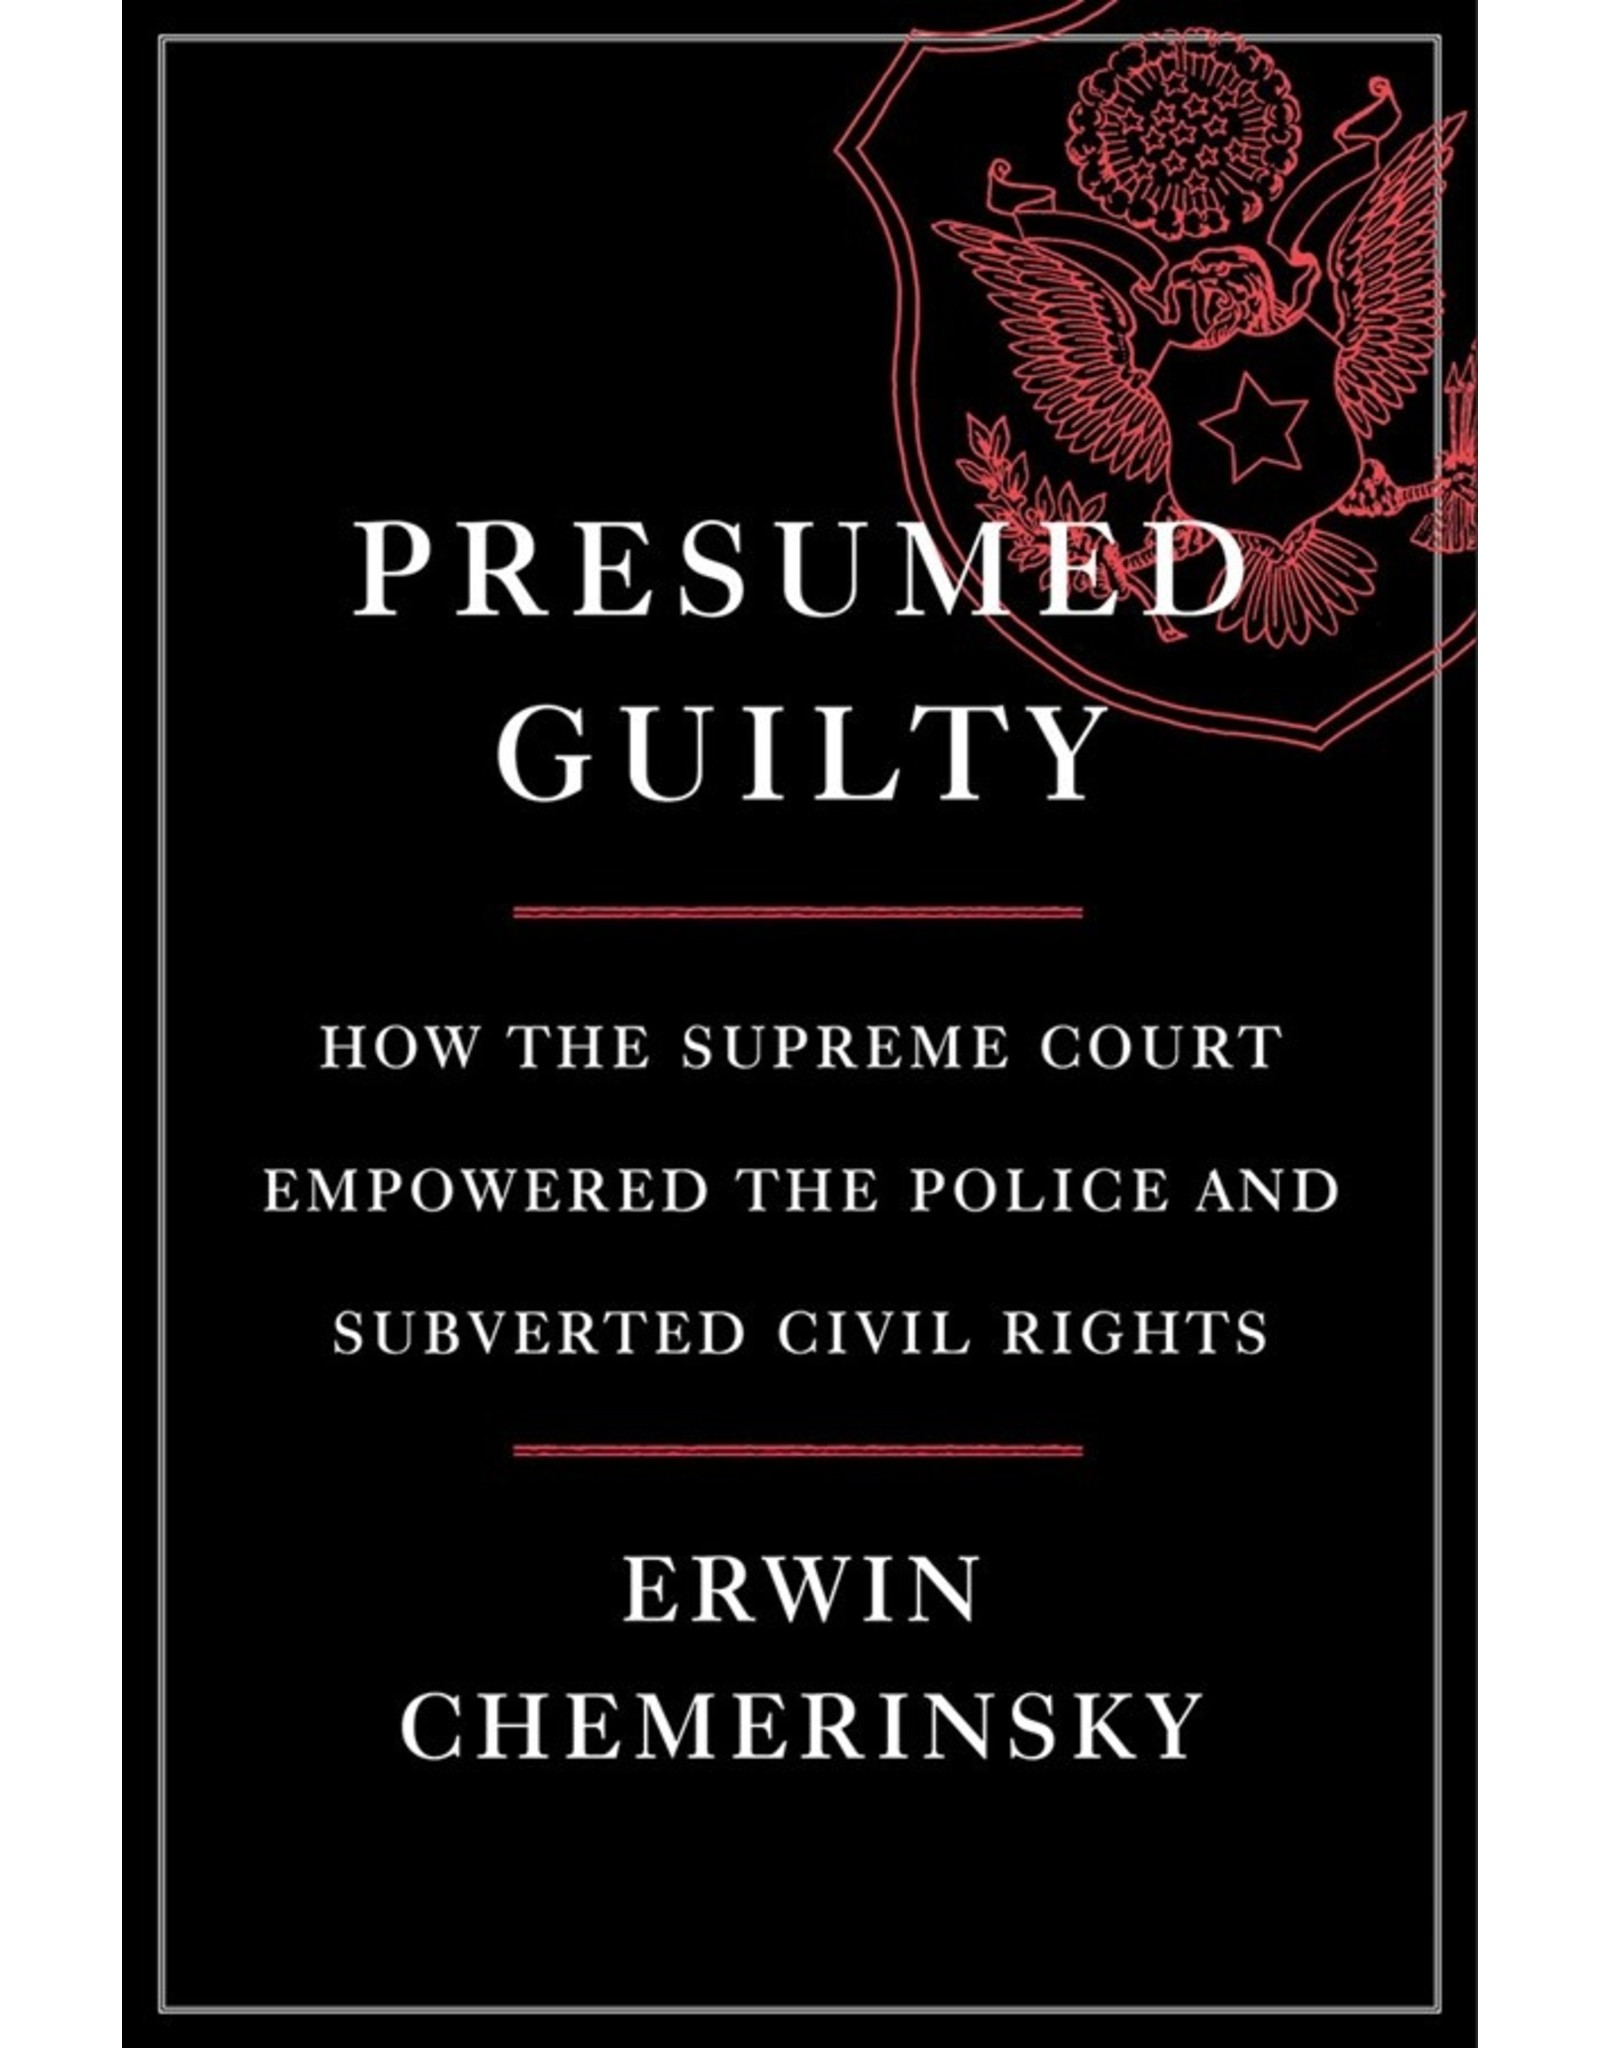 Books Presumed Guilty: How the Supreme Court Empowered the Police and Subverted Civil Rights by Erwin Chemerinsky